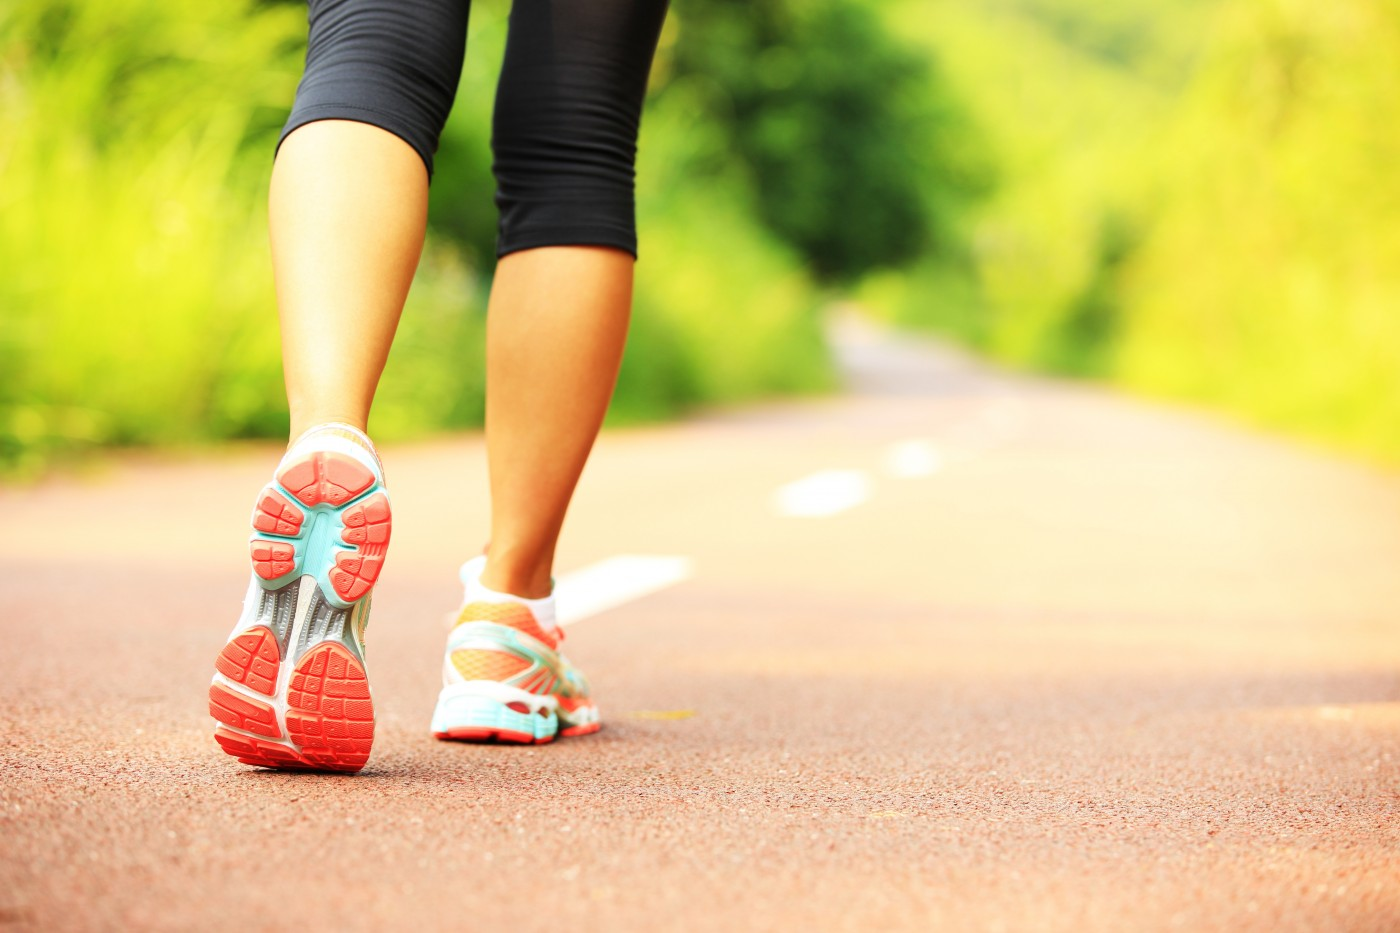 Study Suggests Physical Activity Measurements Are a Valuable Tool in Assessing Adult Cystic Fibrosis Patients' Aerobic Fitness